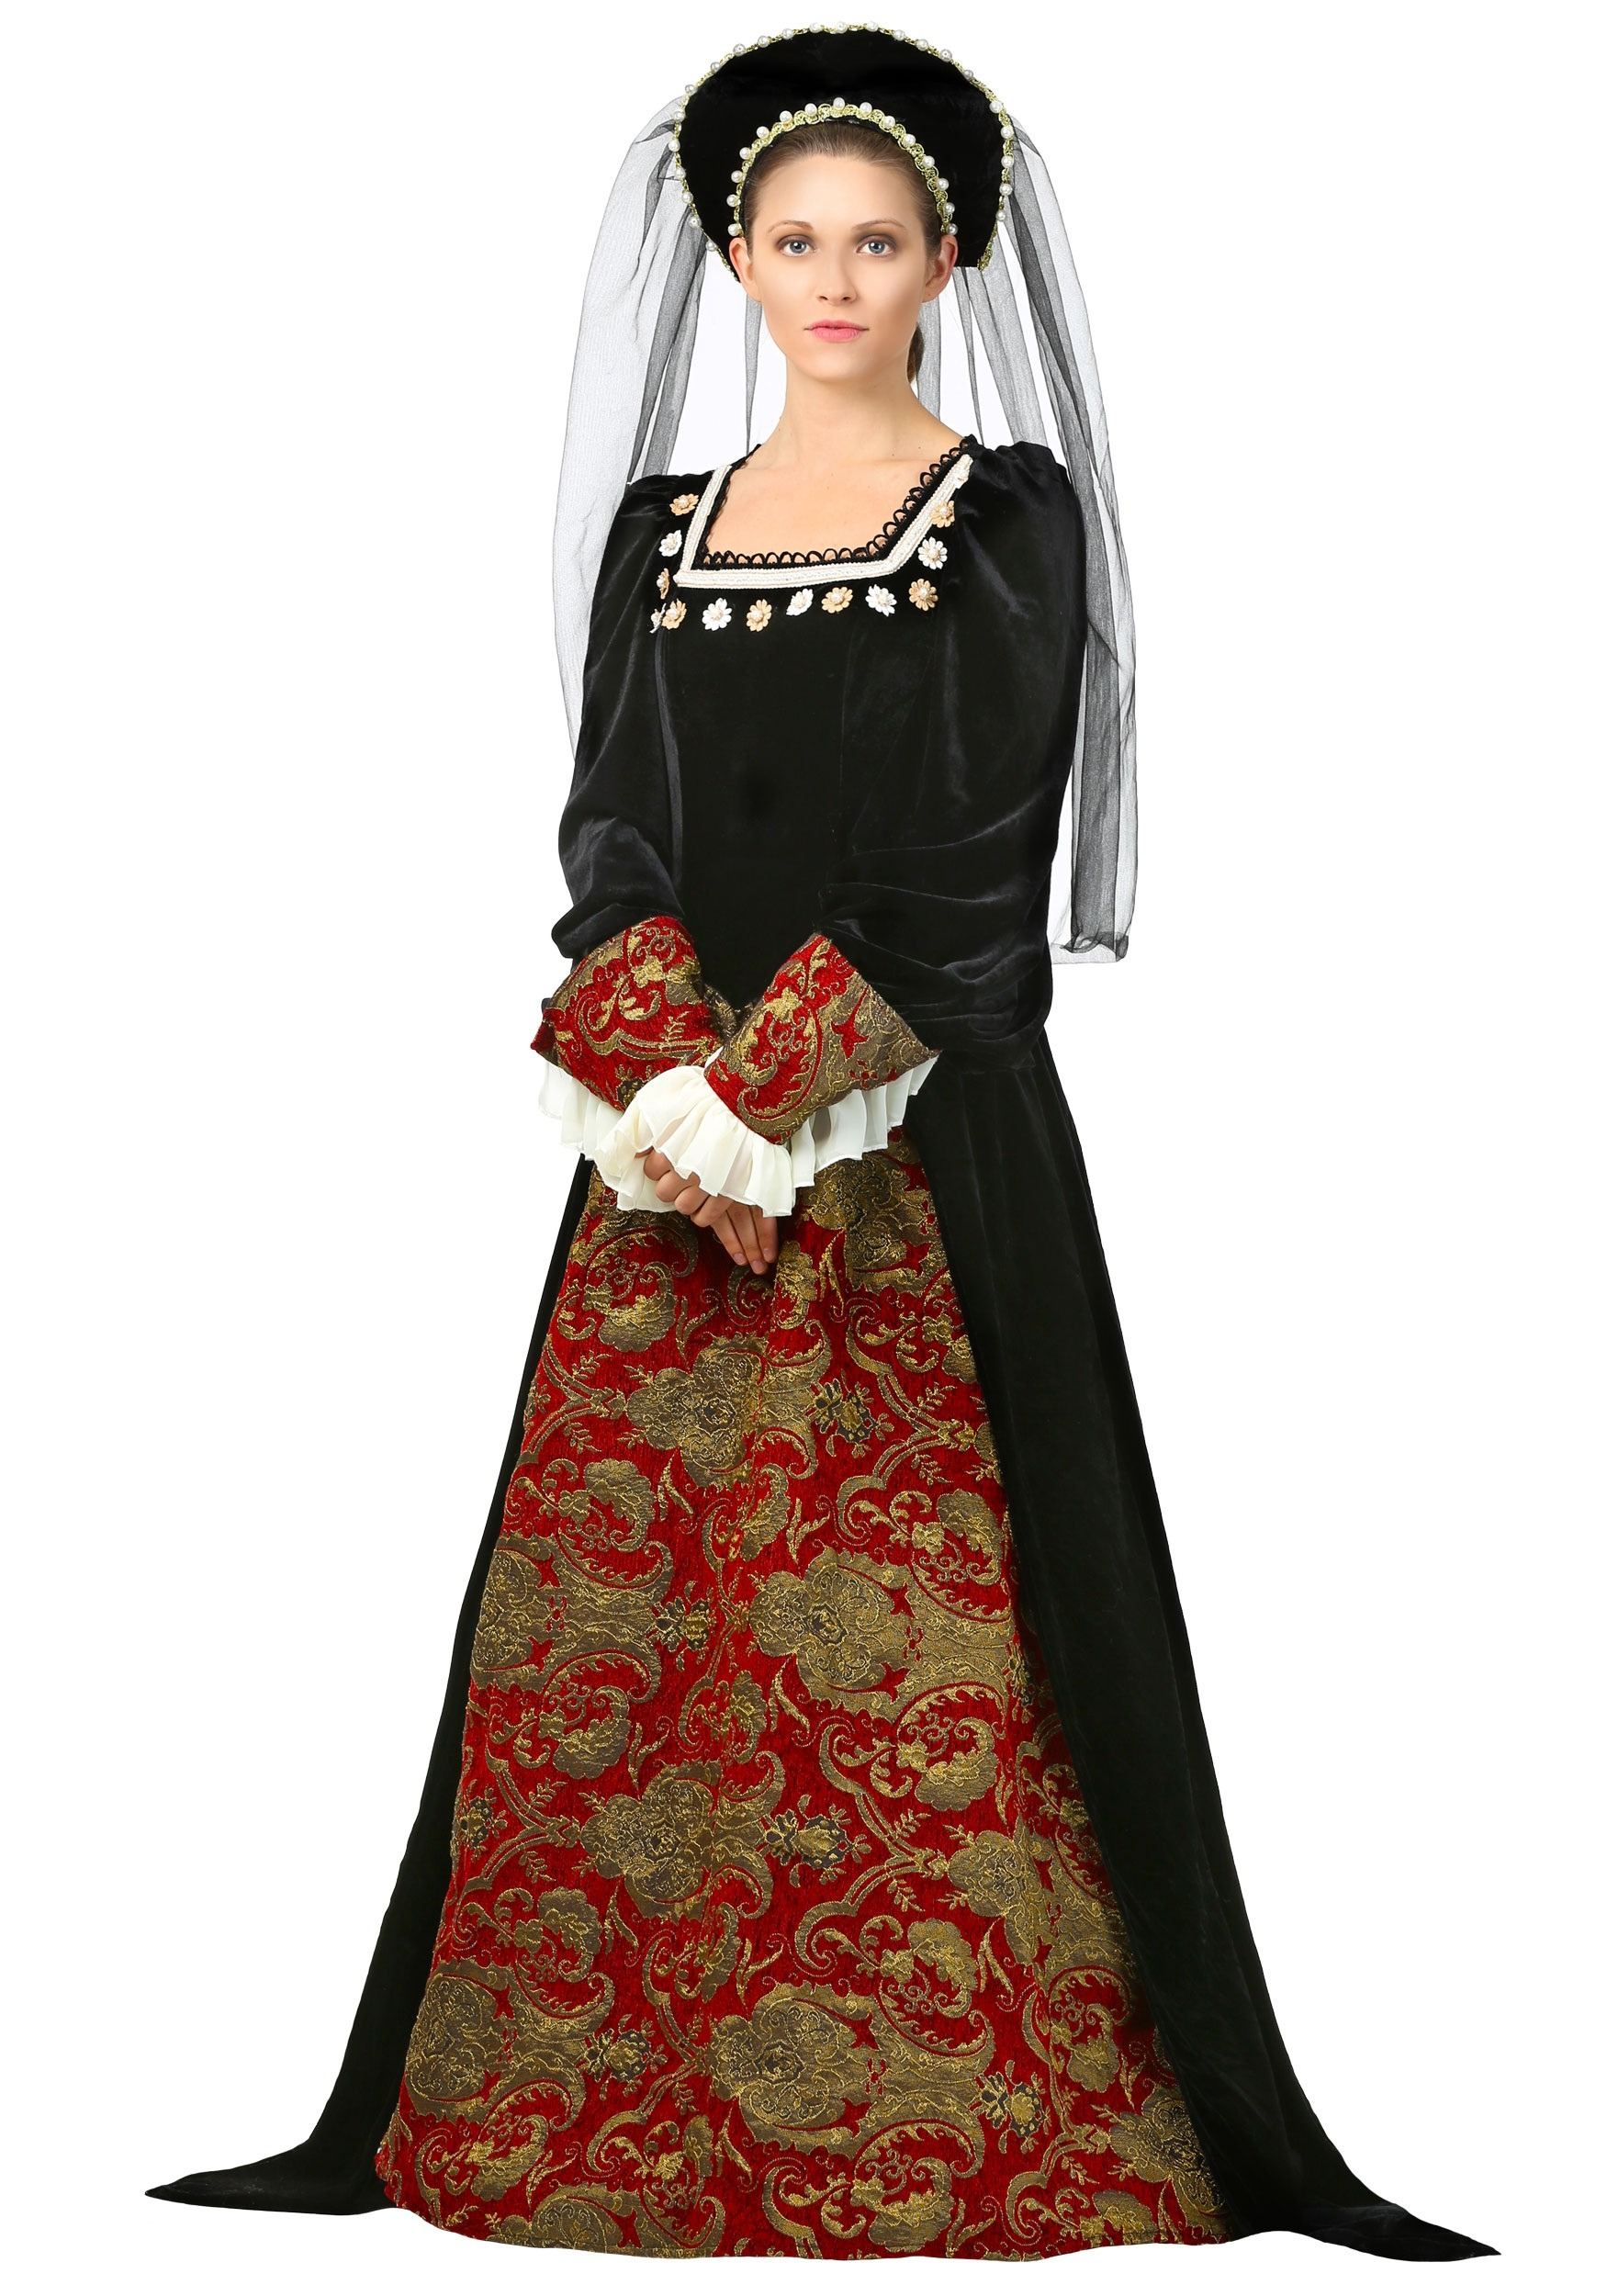 Historical Costumes - Adult, Kids Historical Halloween Costumes